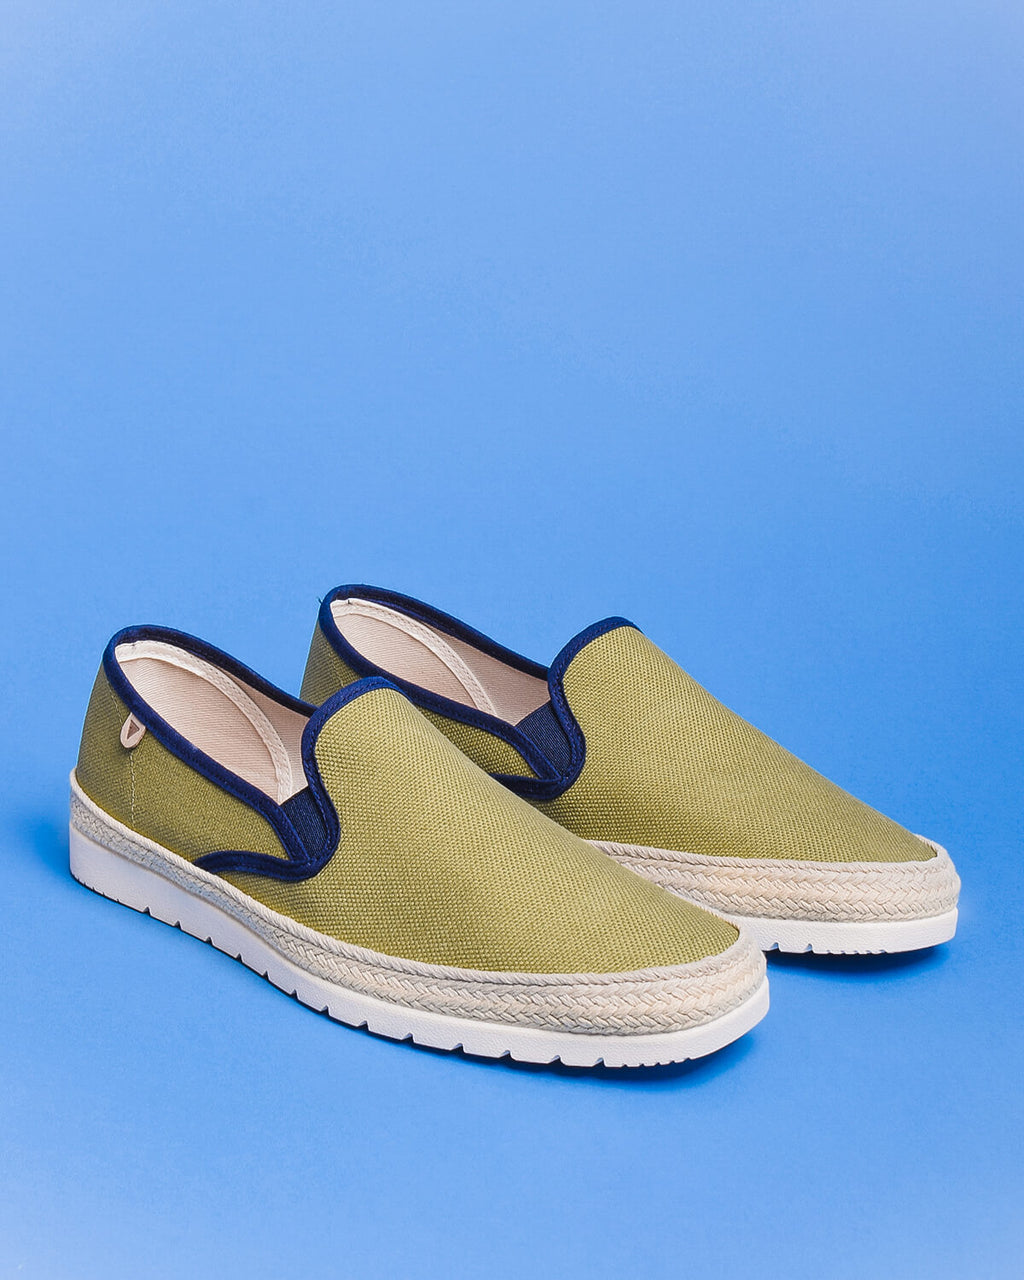 Boris Paris Canvas Slip On Sneakers - Khaki / Green